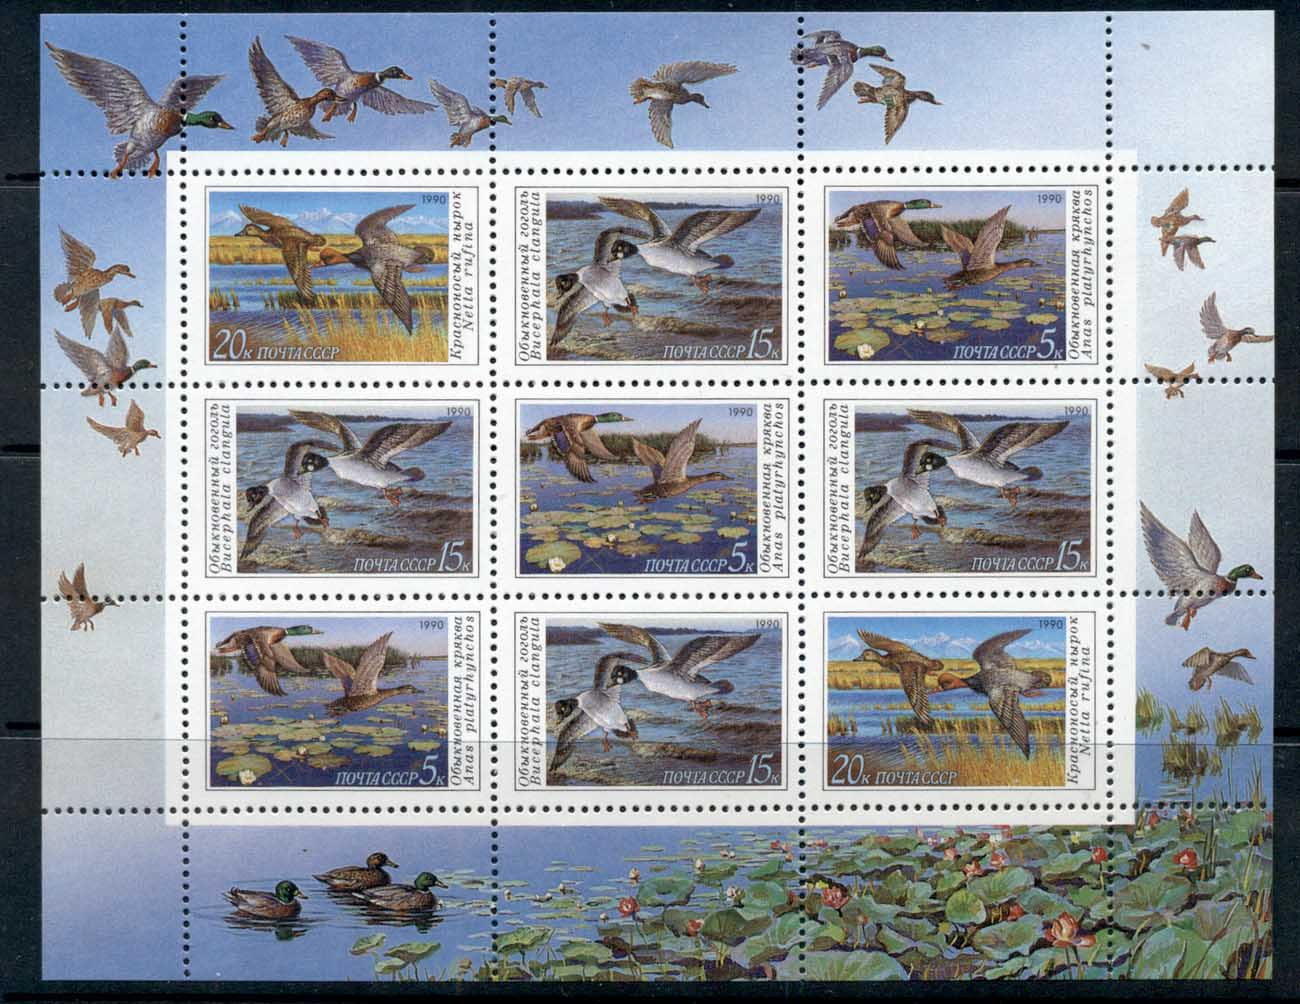 Russia 1990 Waterbirds, Ducks sheetlet MUH